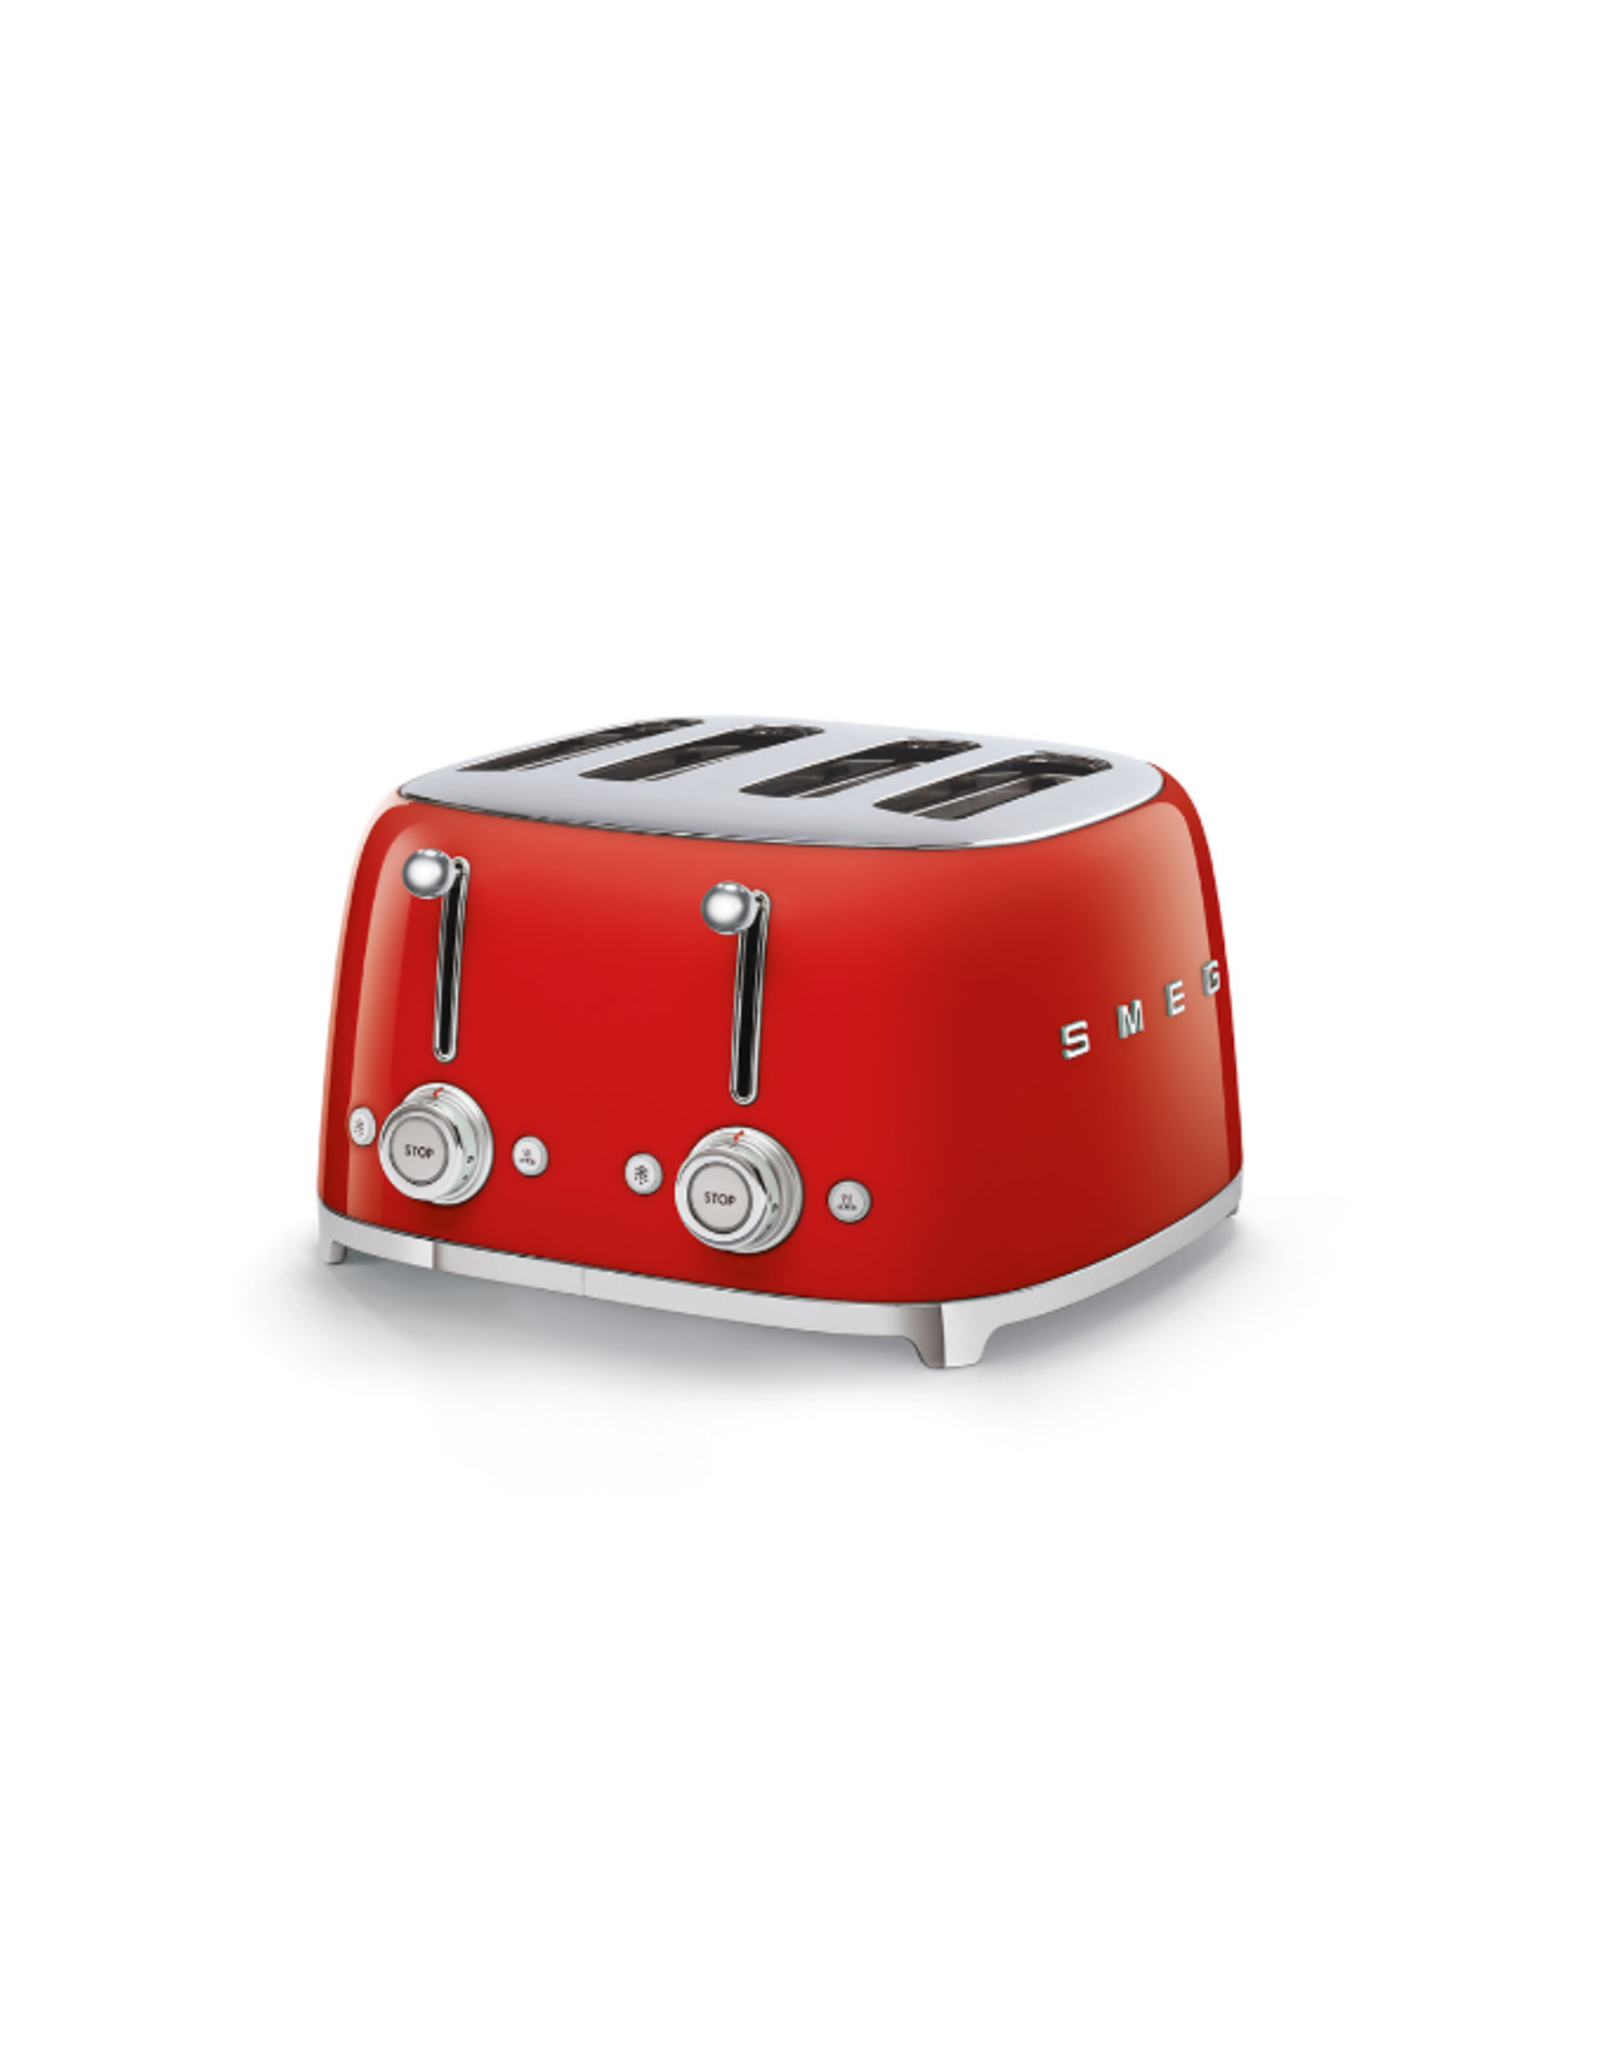 Smeg 4 Slot Toaster, Red